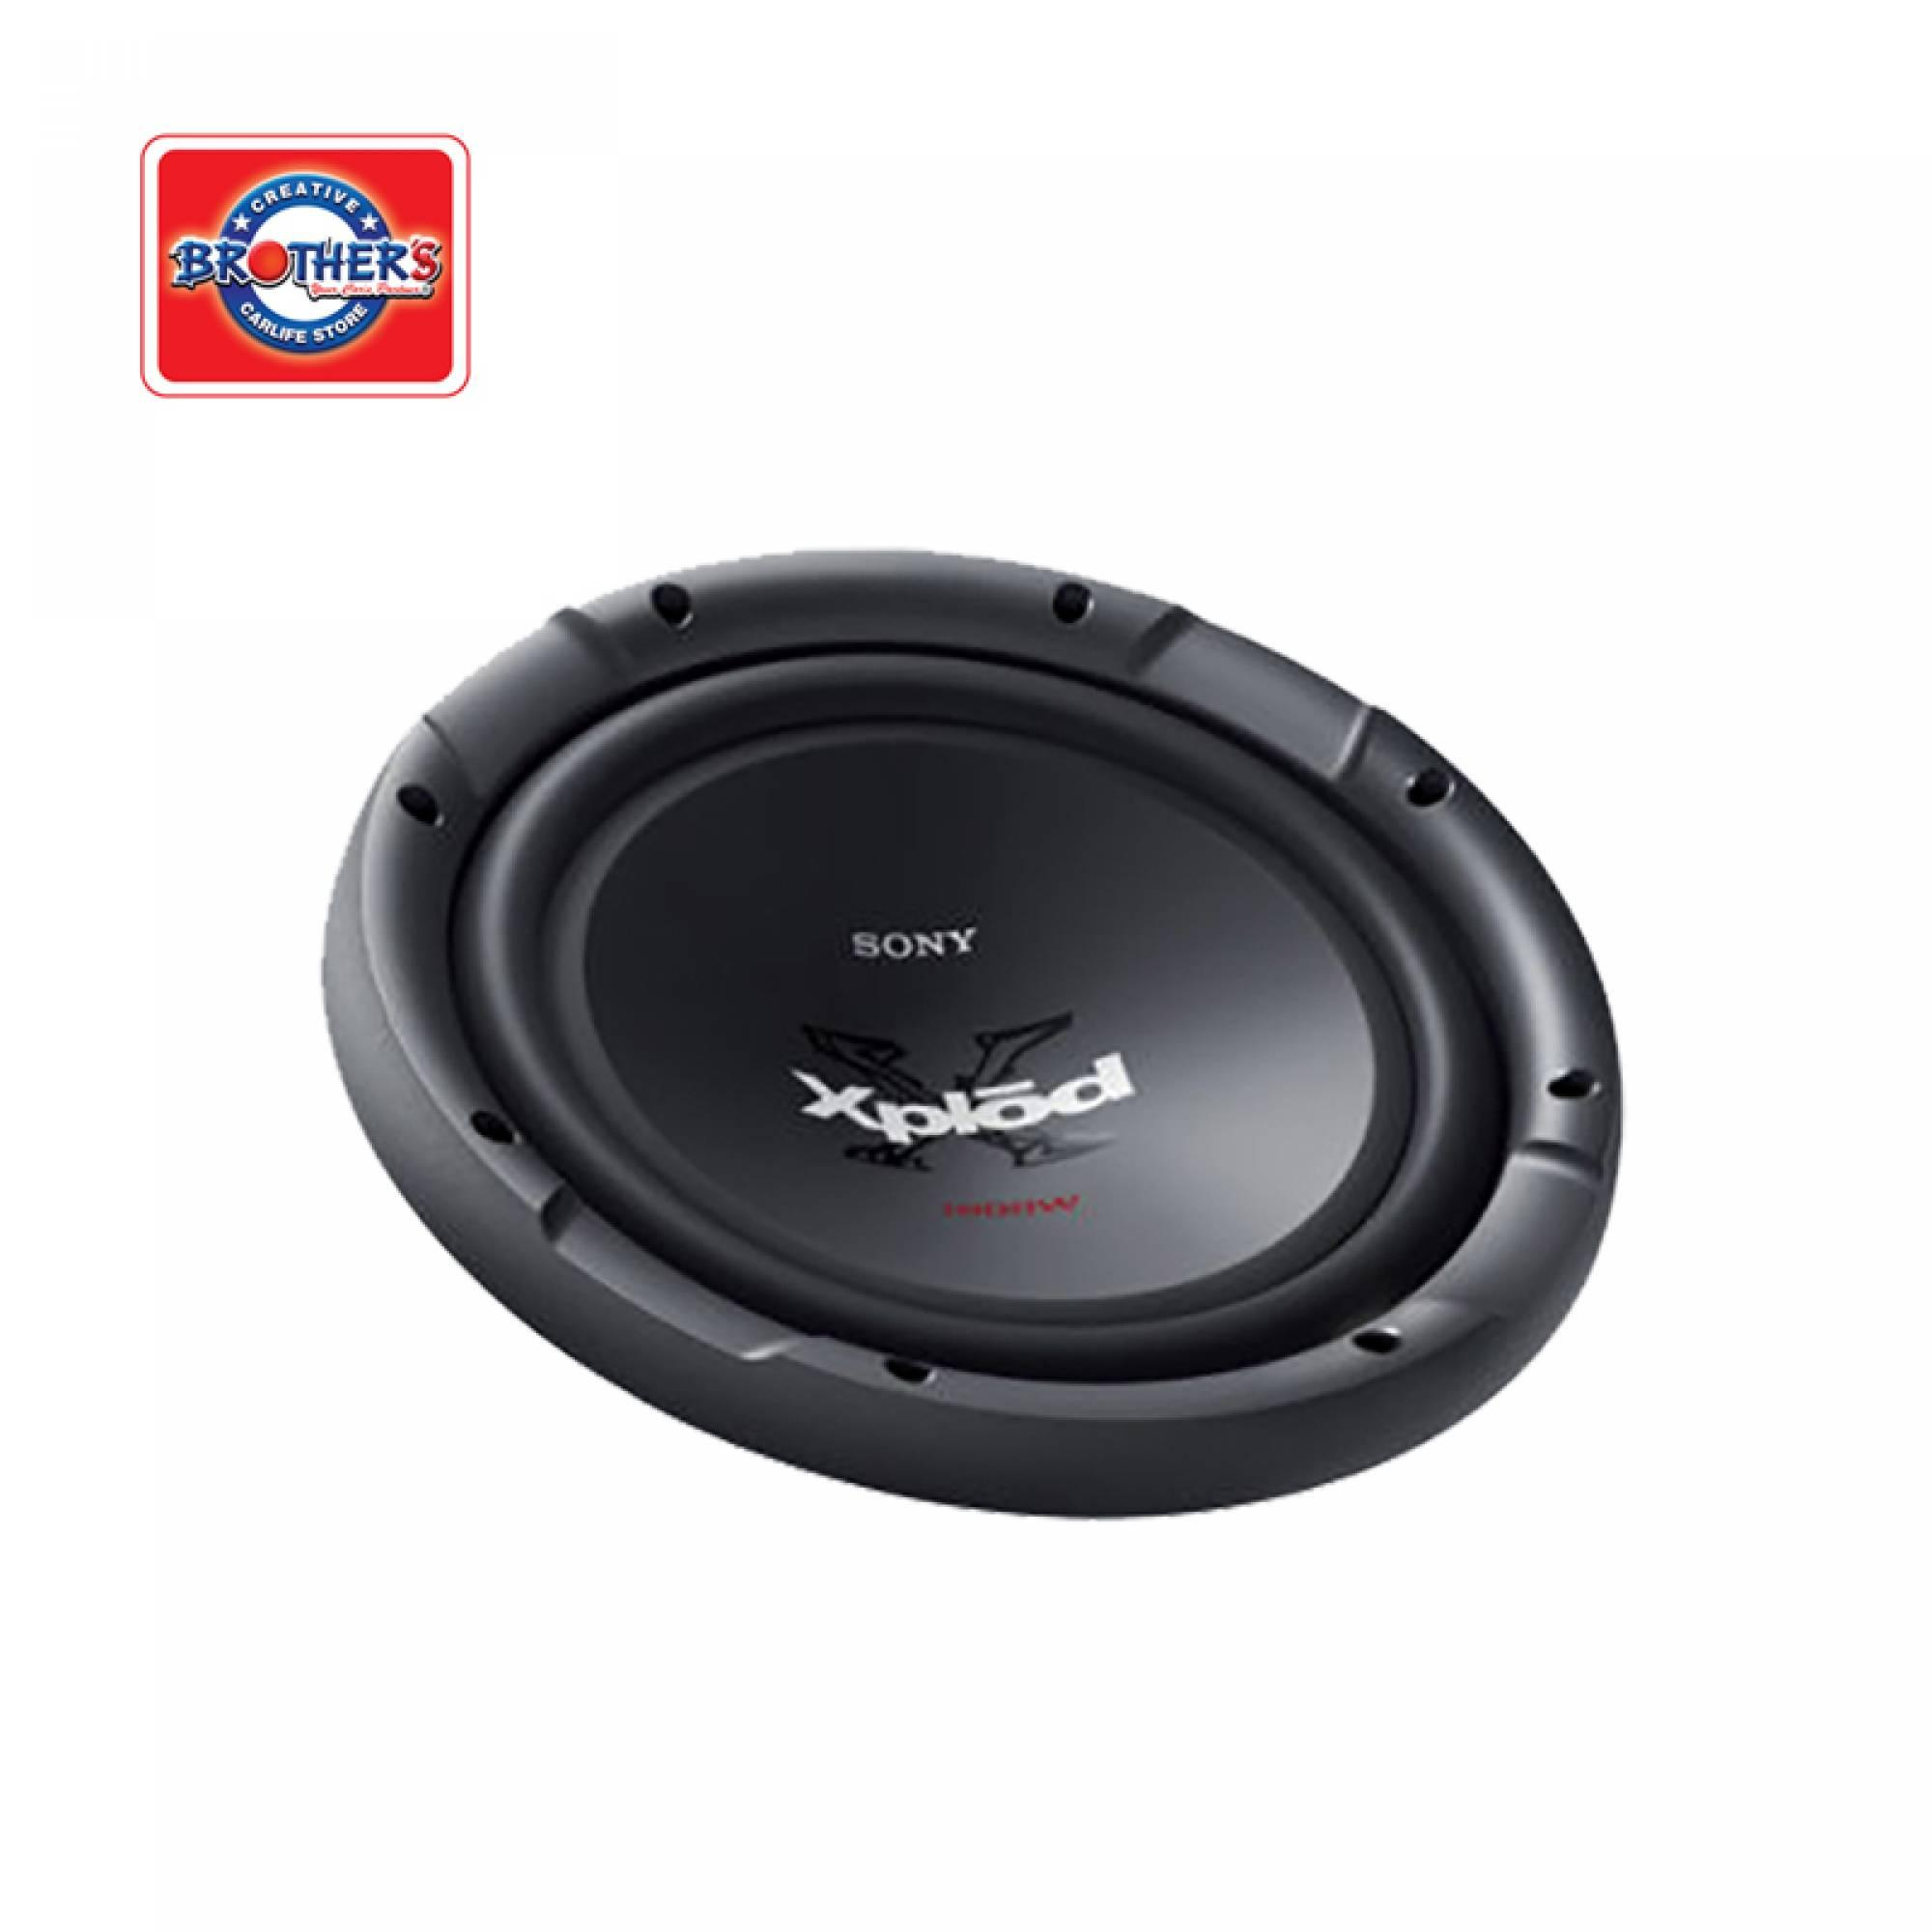 Speaker Woofer Brothers Factory Outlet M Sdn Bhd Online Kit Power Subwoofer Aktif Sony Xs Nw1201 12